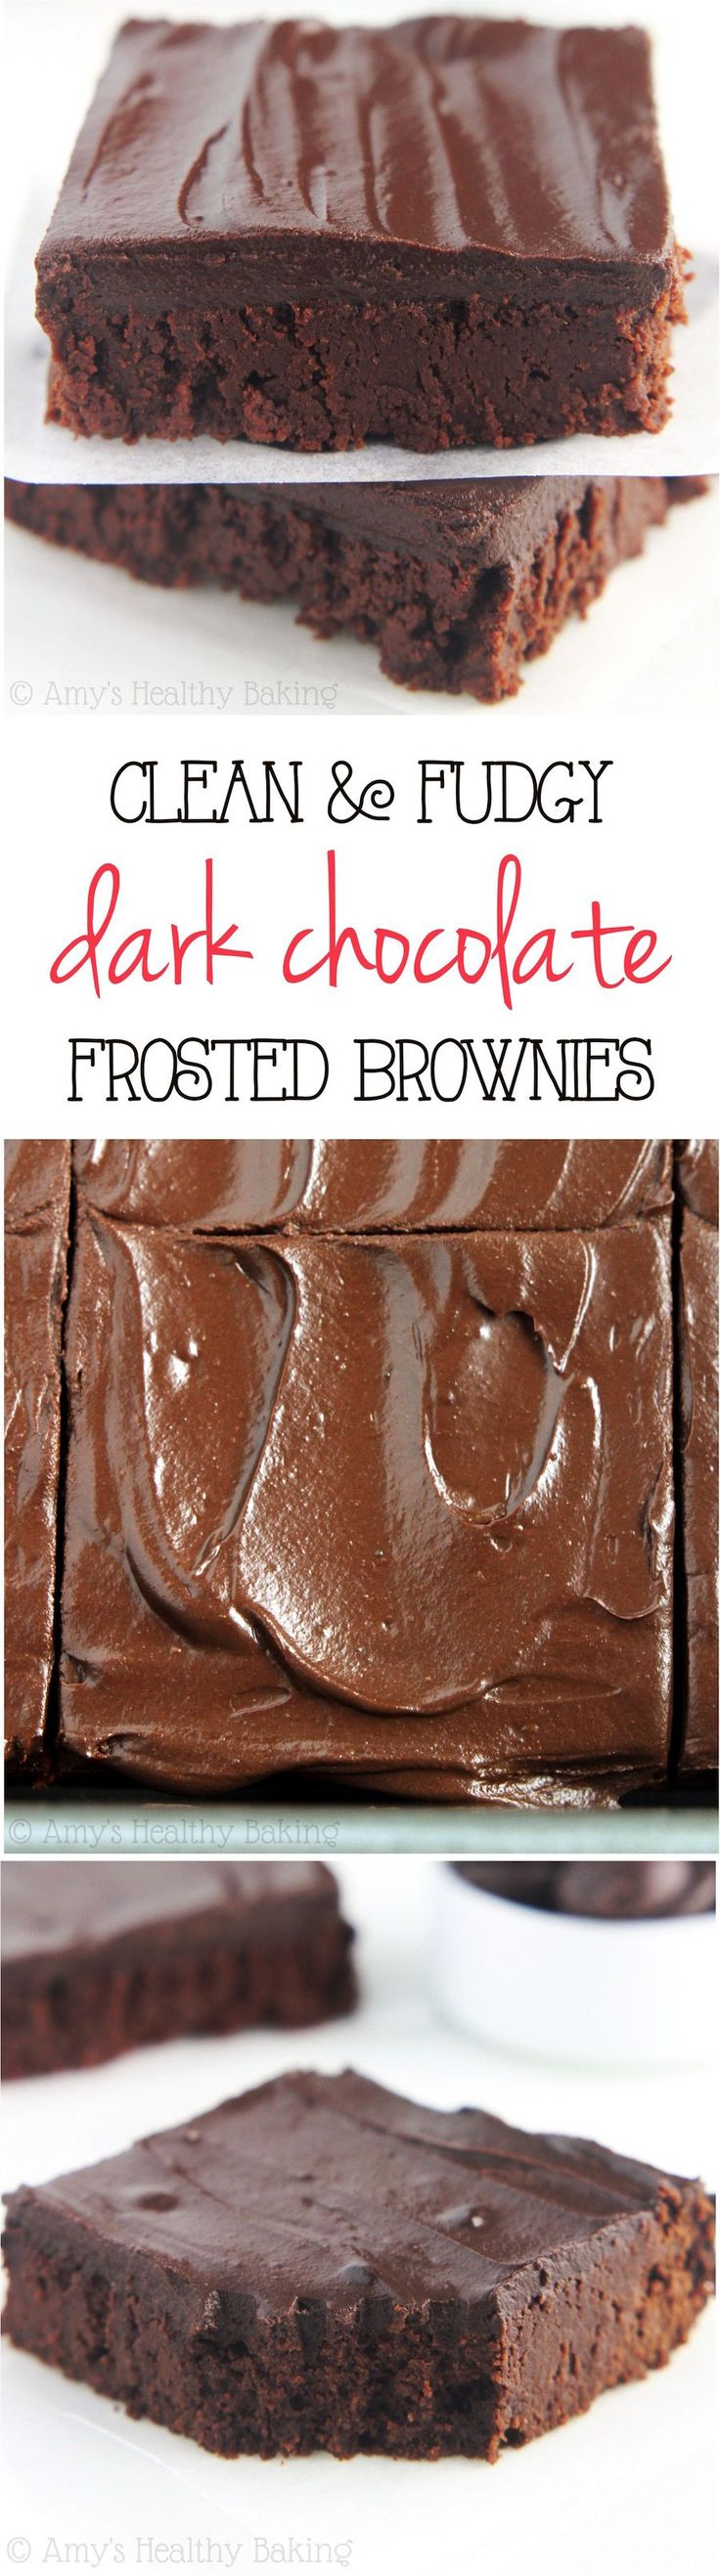 Fudgy Dark Chocolate Frosted Brownies -- these skinny brownies don't taste healthy at all! They're insanely rich, so easy & just 100 calories!